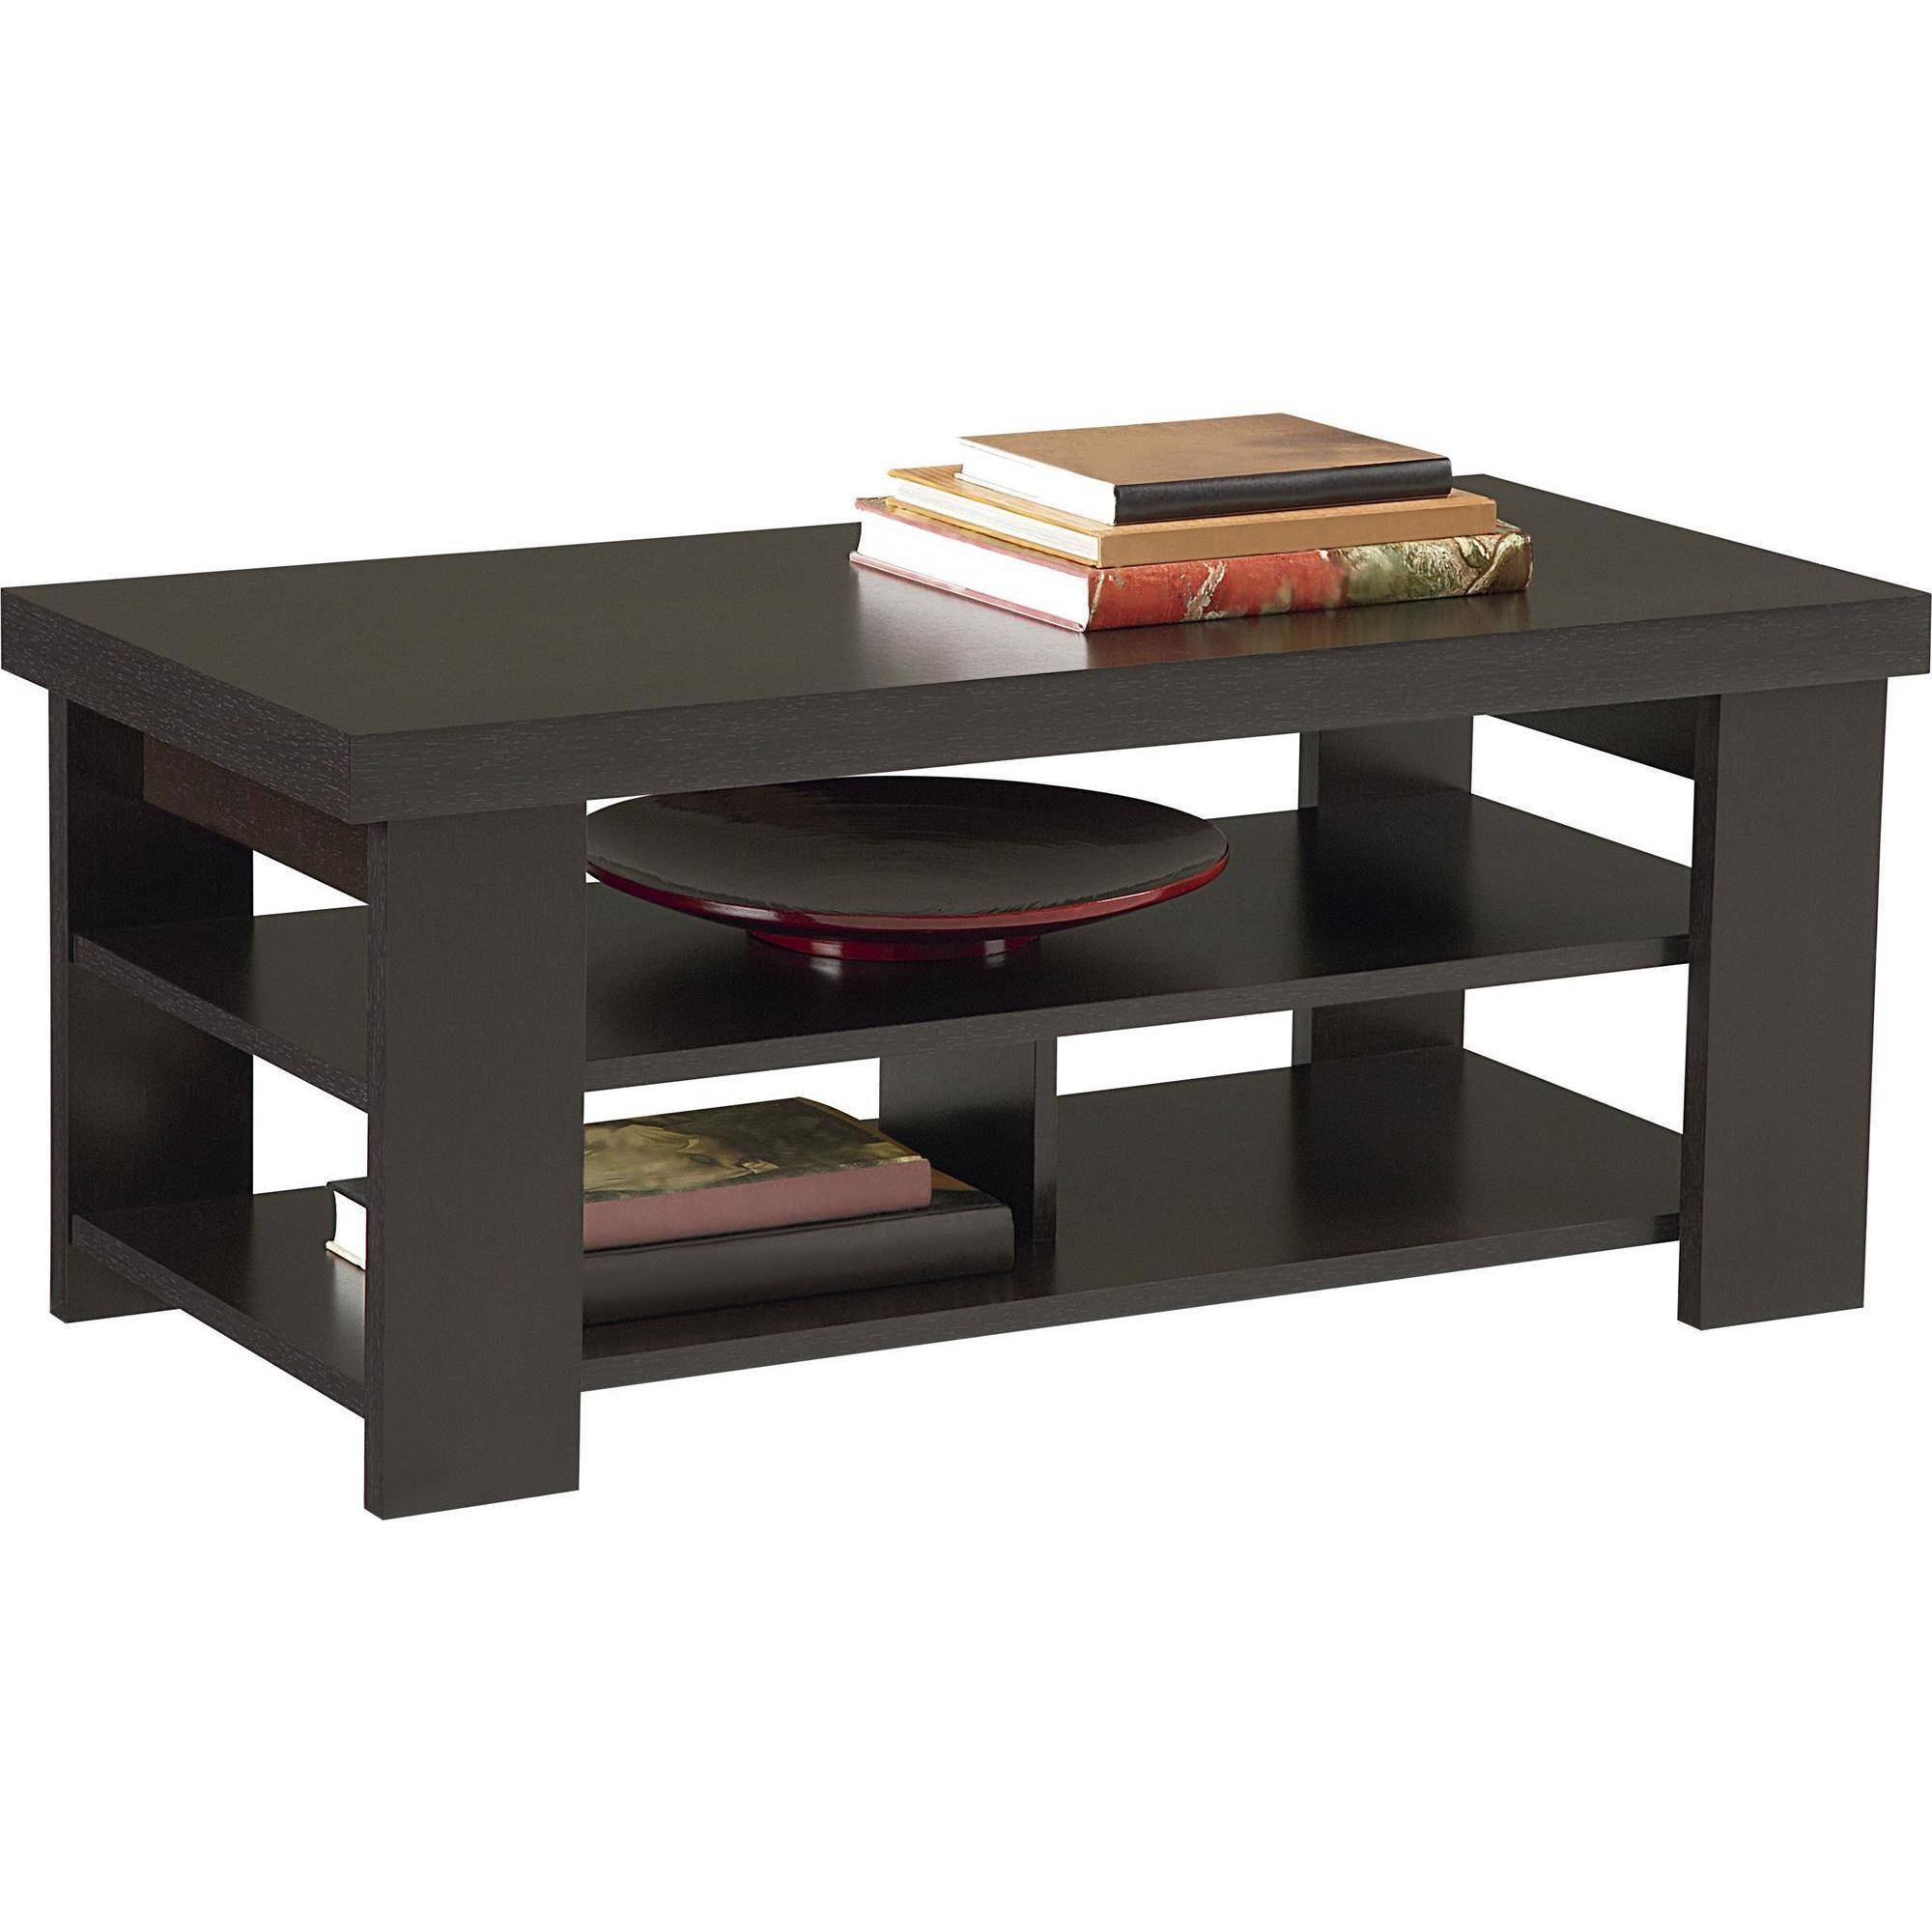 Ameriwood Home Jensen Coffee Table, Espresso - Walmart for Espresso Coffee Tables (Image 5 of 30)